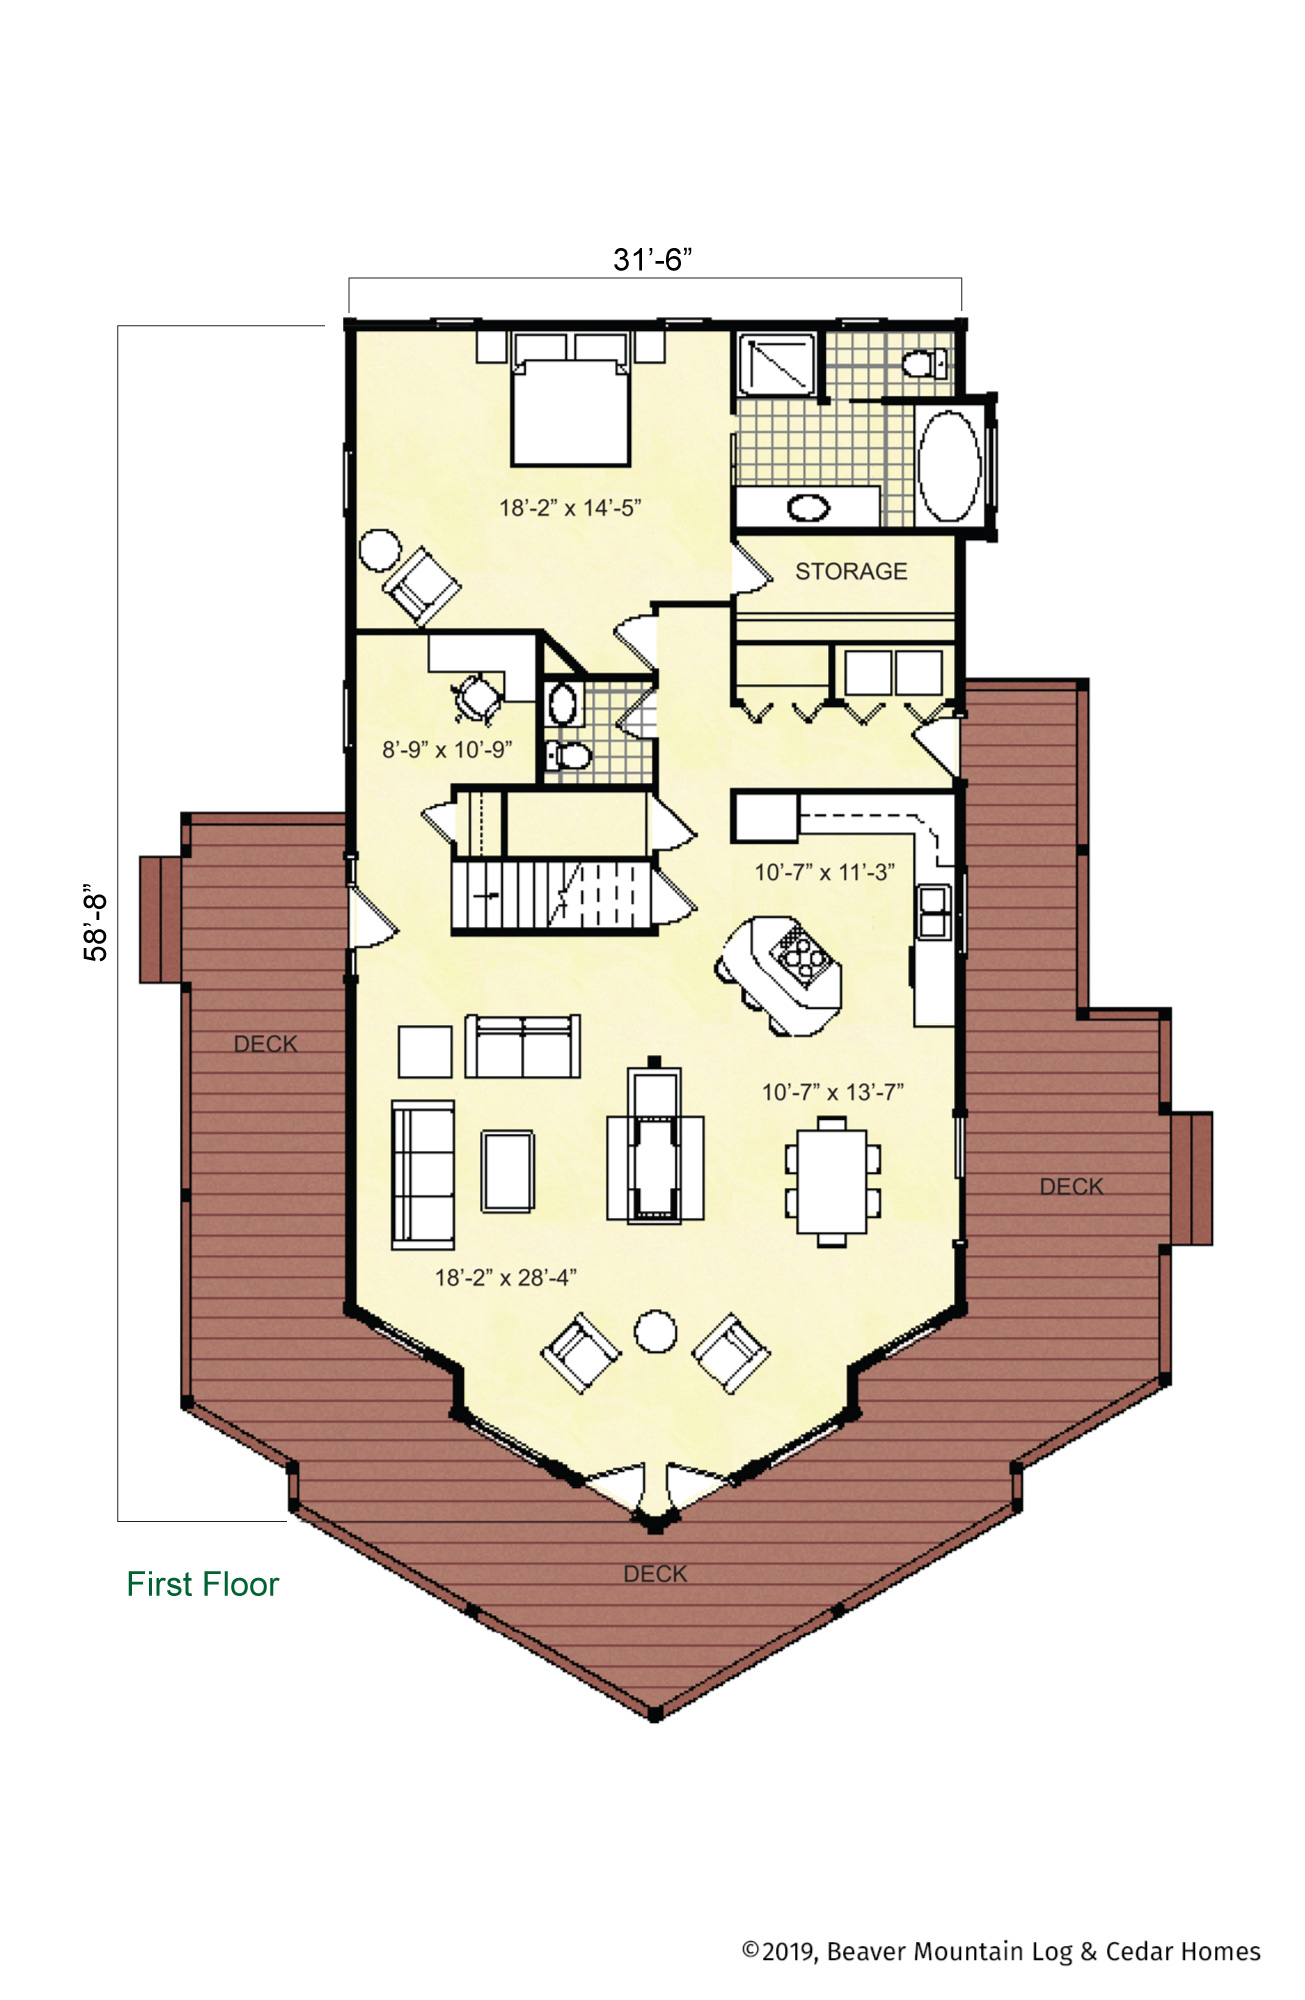 Beaver Mountain Log Homes Tupper Lake Timber Home Main Level Floor Plan